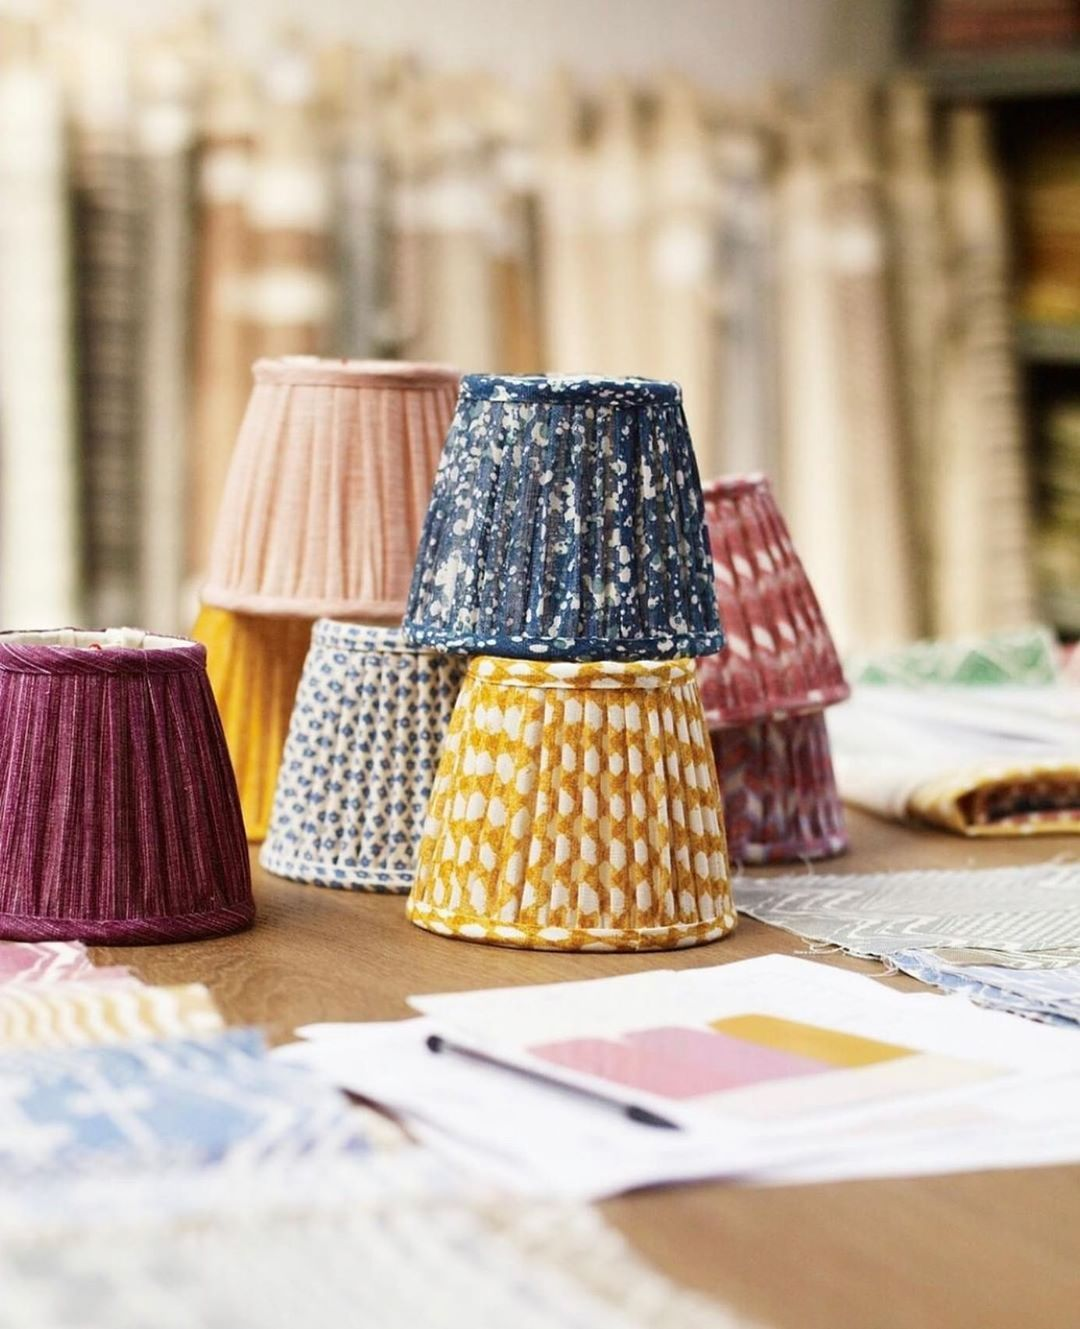 Hollywoodathome On Instagram A Good Lampshade Can Make A Room Order Fermoie Lampshades Thru Us Many Sizes And Fabrics To Cho Lampshades Making Room Design